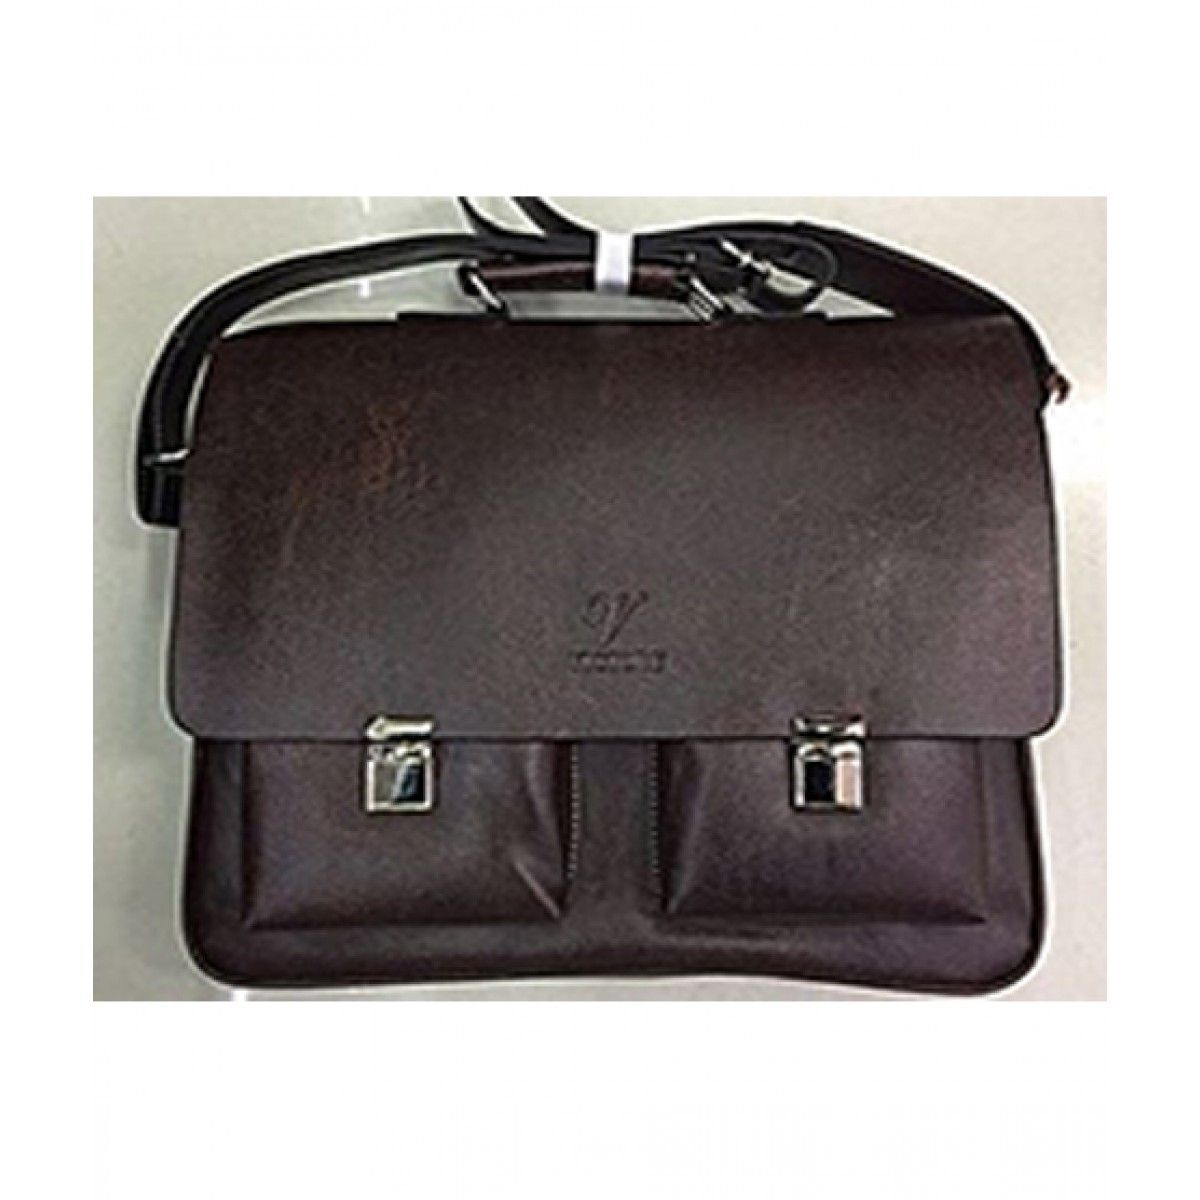 M.H Store 15.6  PU Leather Laptop Bag Price in Pakistan  6718592f4